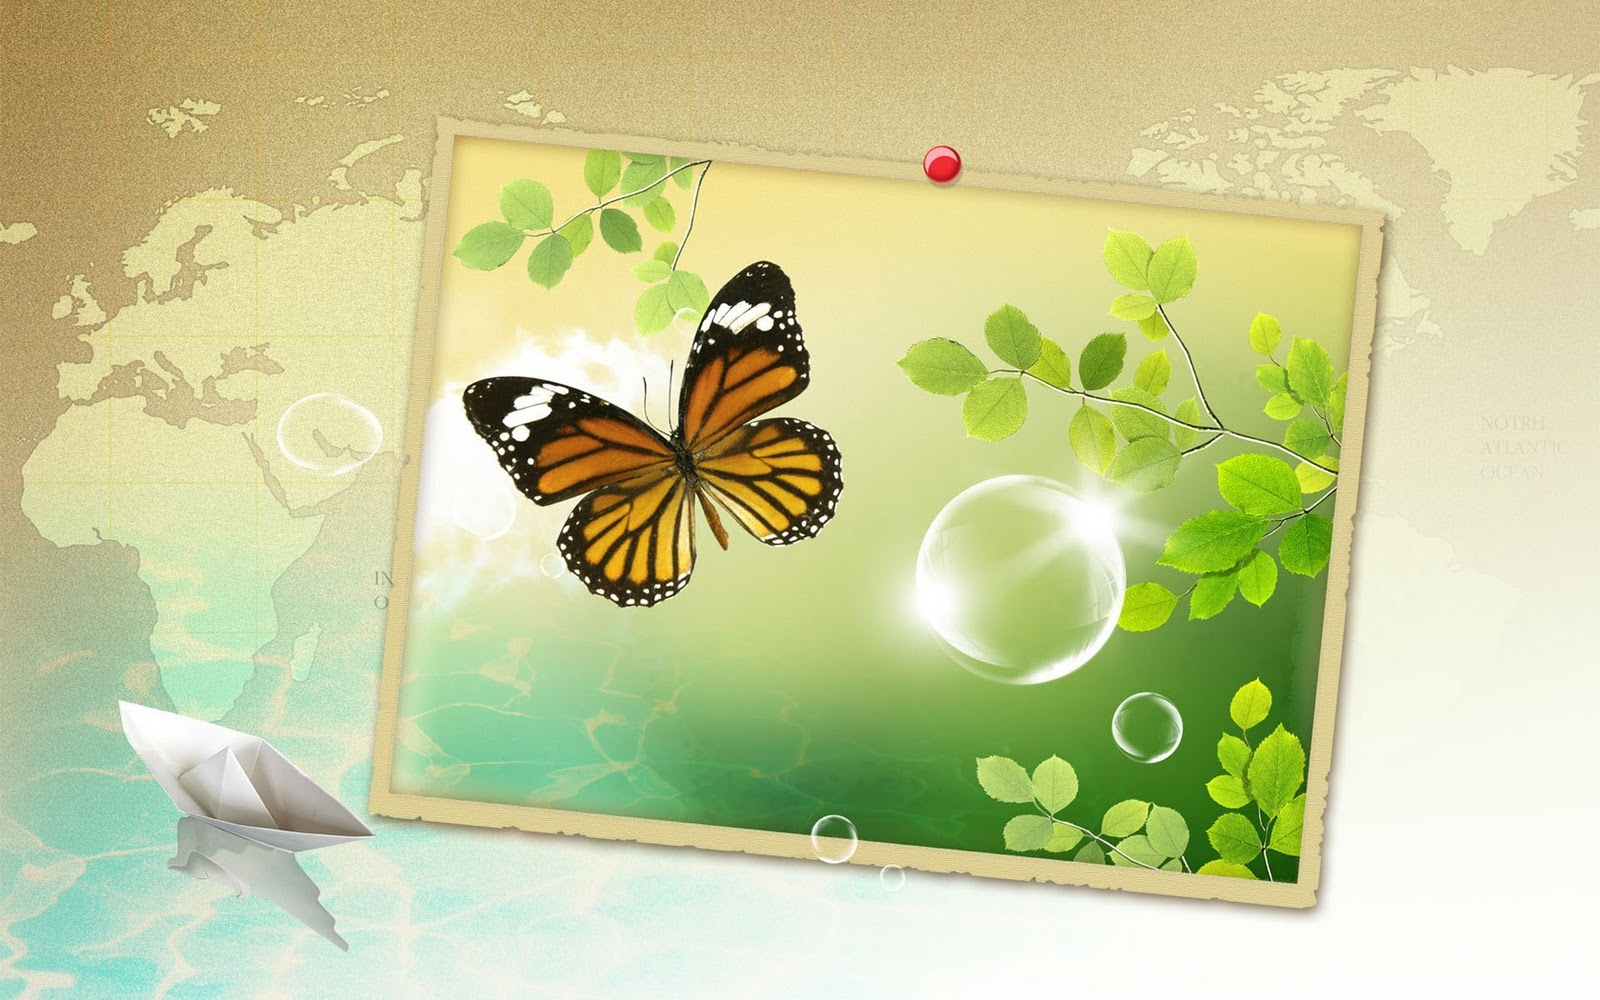 http://2.bp.blogspot.com/_RAlP3BmEW1Q/TQX7OtveXBI/AAAAAAAACSI/ZtgN25aV-K4/s1600/The-best-top-spring-desktop-wallpapers-15.jpg